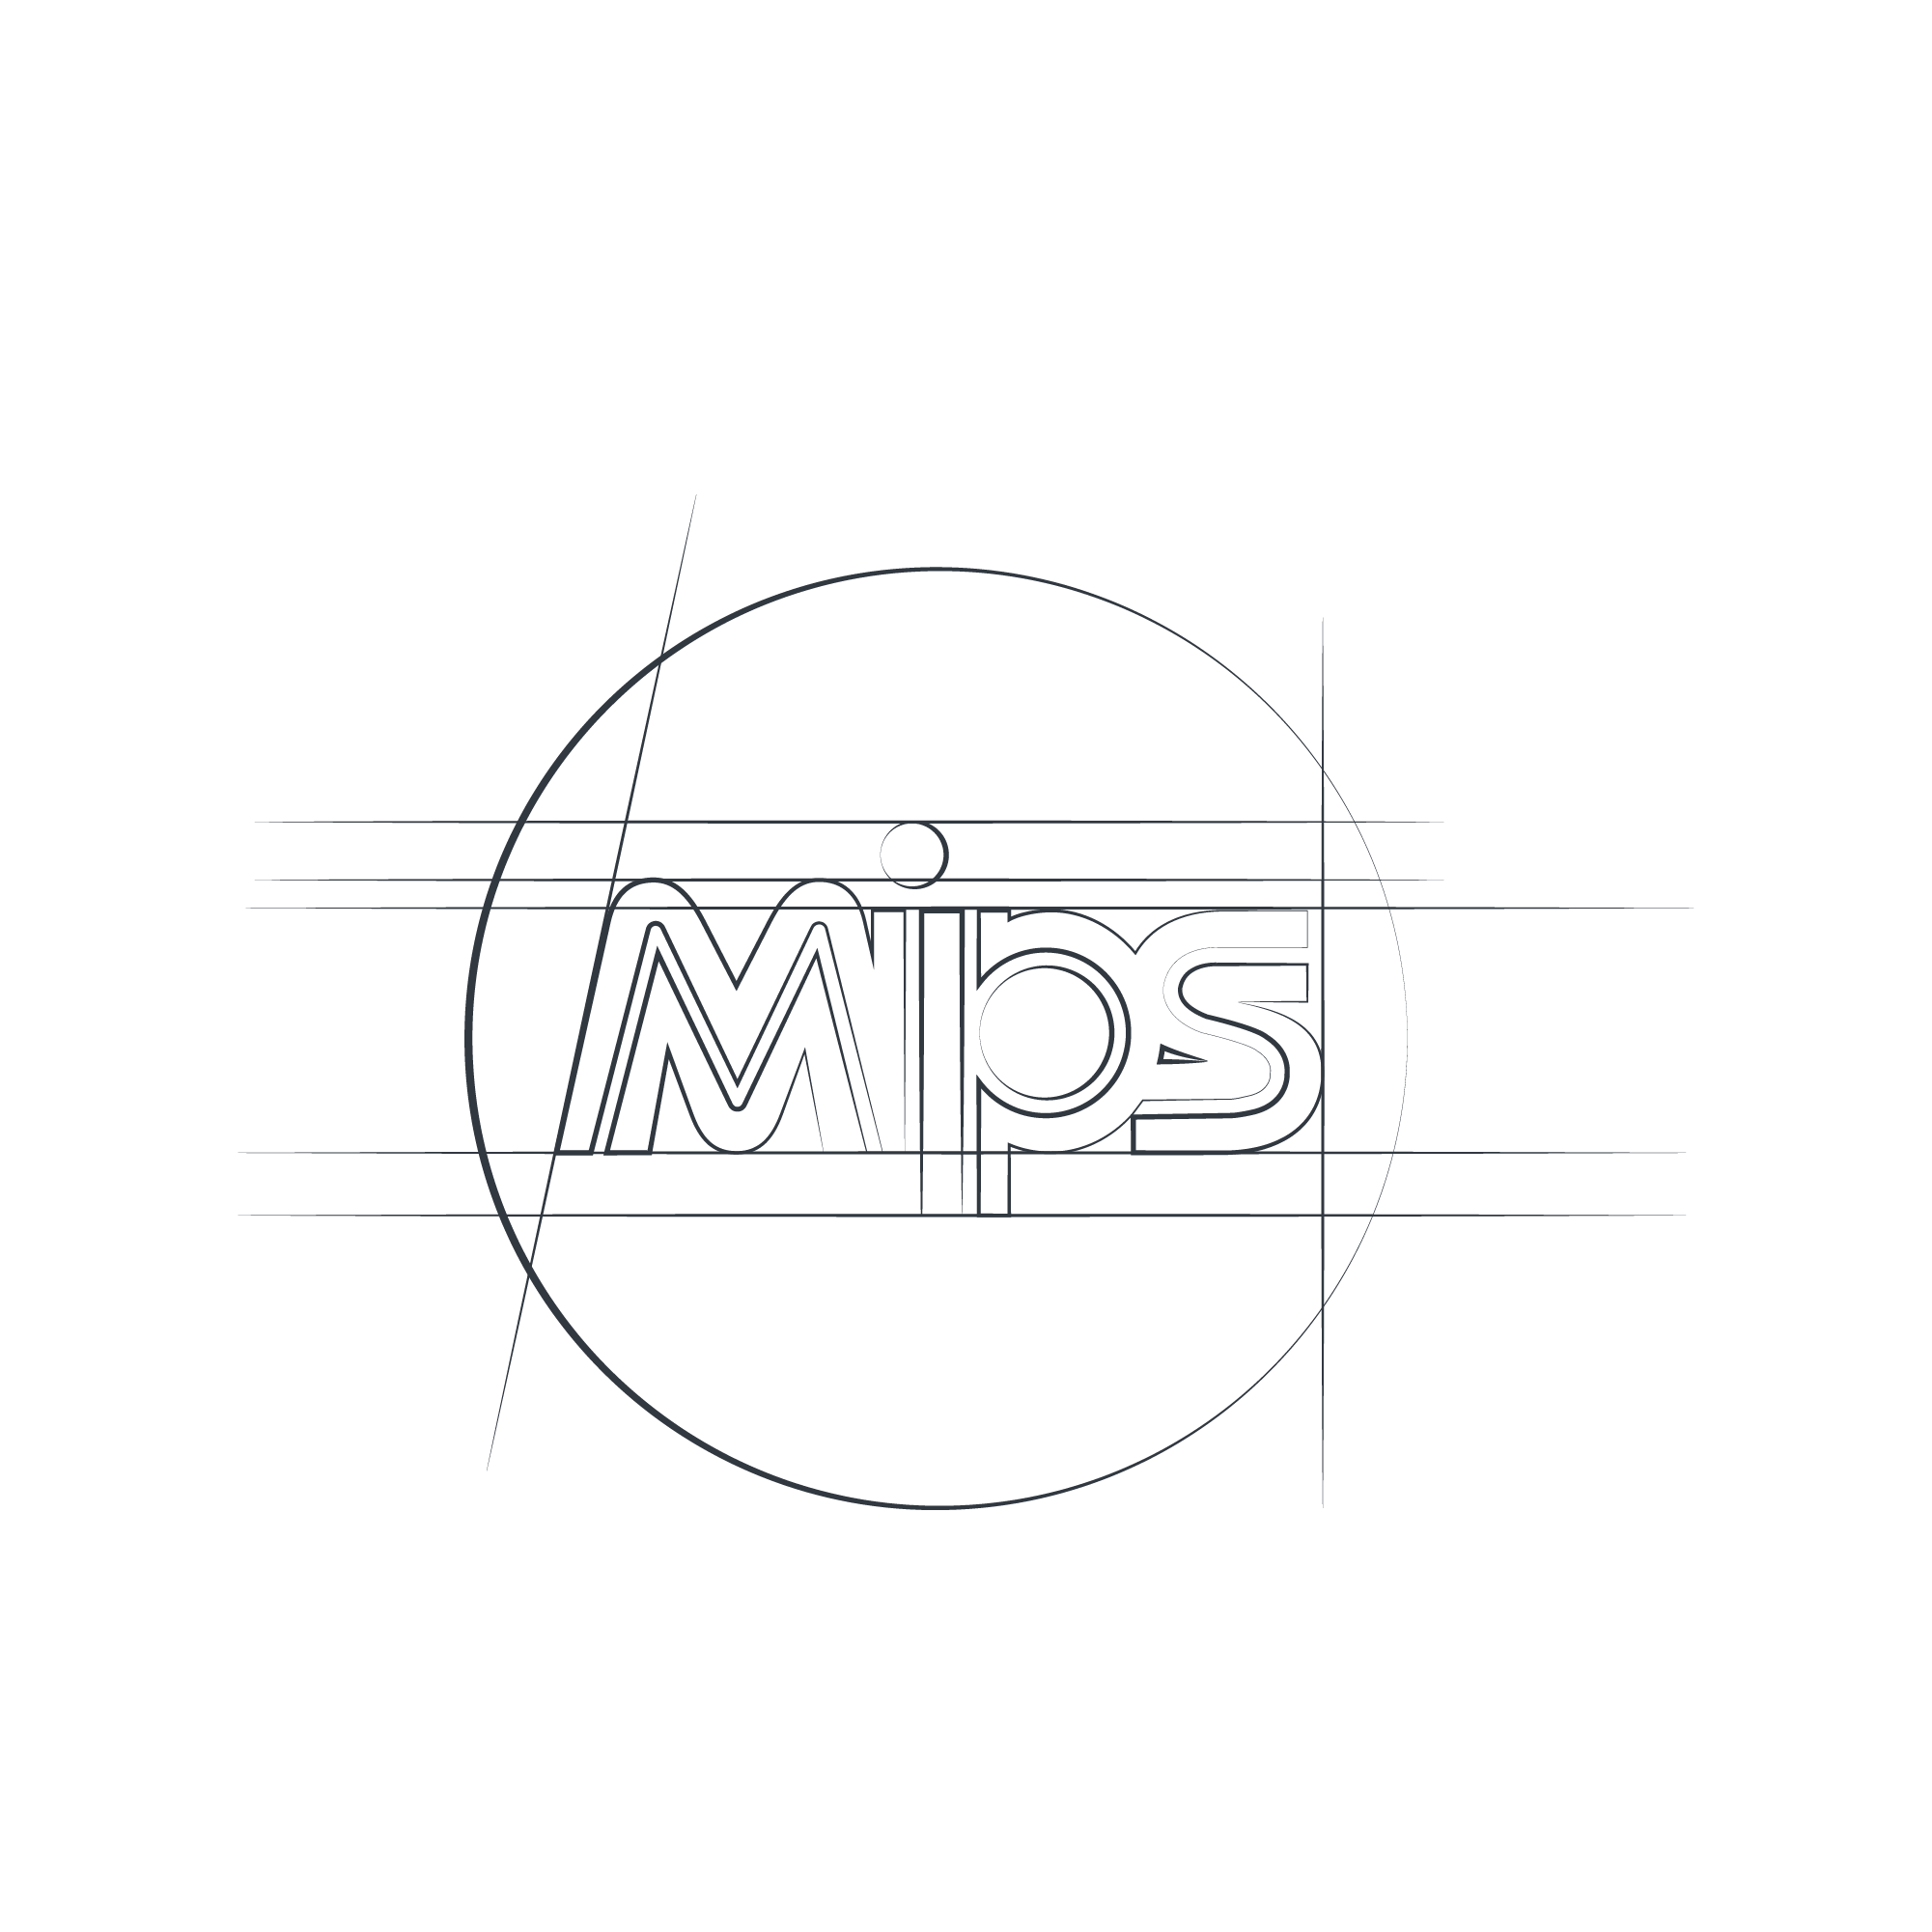 Commercial ab mipscommercial. Mips clip image free